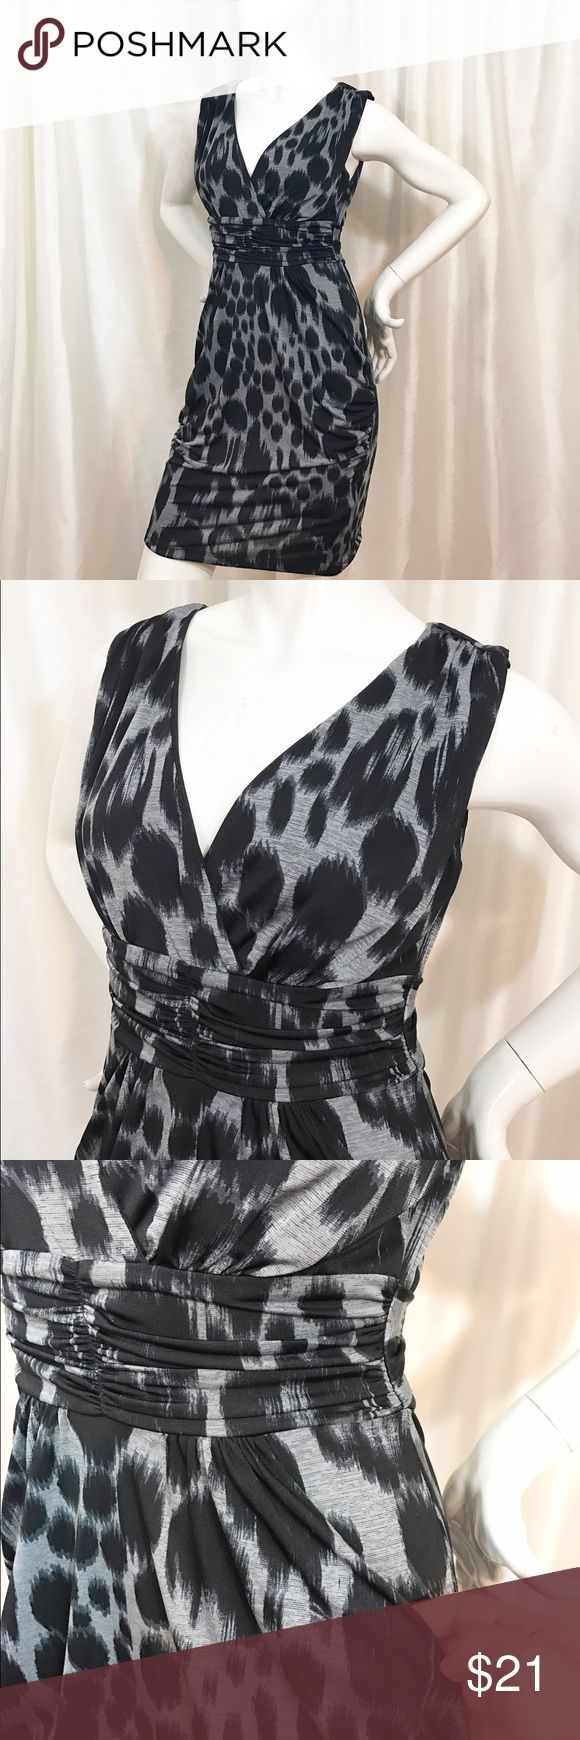 Black/Gray Animal Print Cocktail Dress sz M BCX Brand Dress from Macy's. Sleeveless V-neck cut strapped at the waist and ties in the back. With Pockets. Slinky and comfortable...very flattering. 94% Polyester 6% Spandex Sz M BCX Dresses